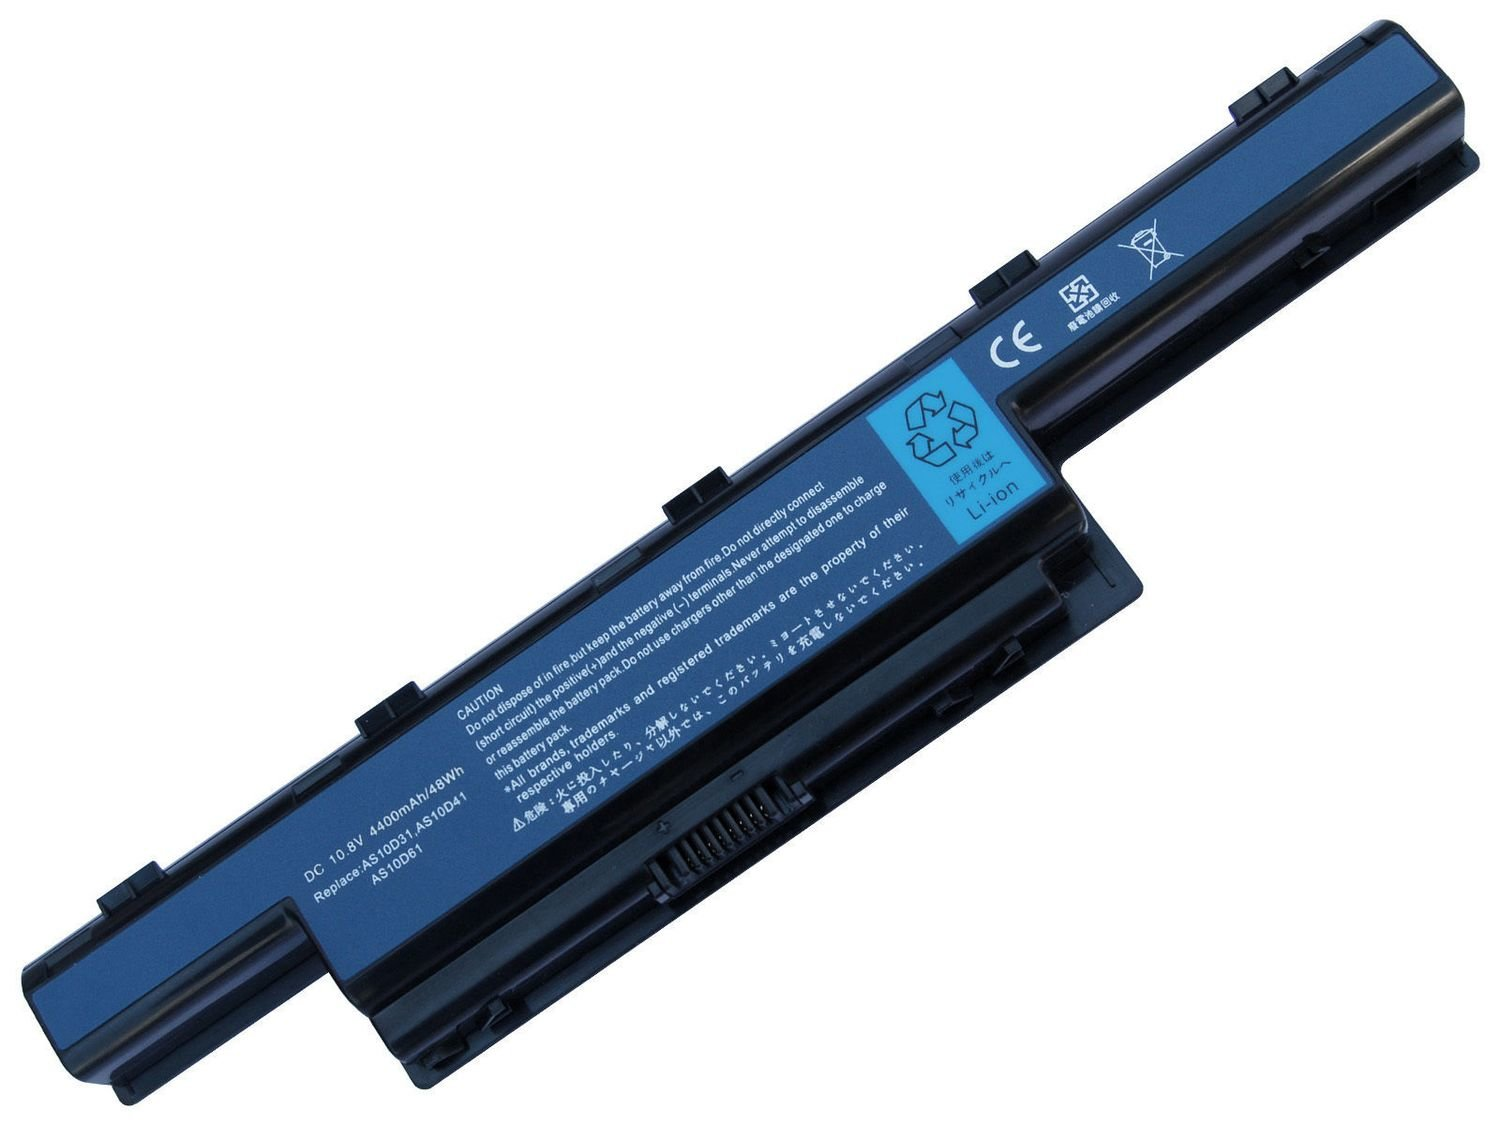 Acer aspire 5250 5251 5252 5253 5253G series laptop battery